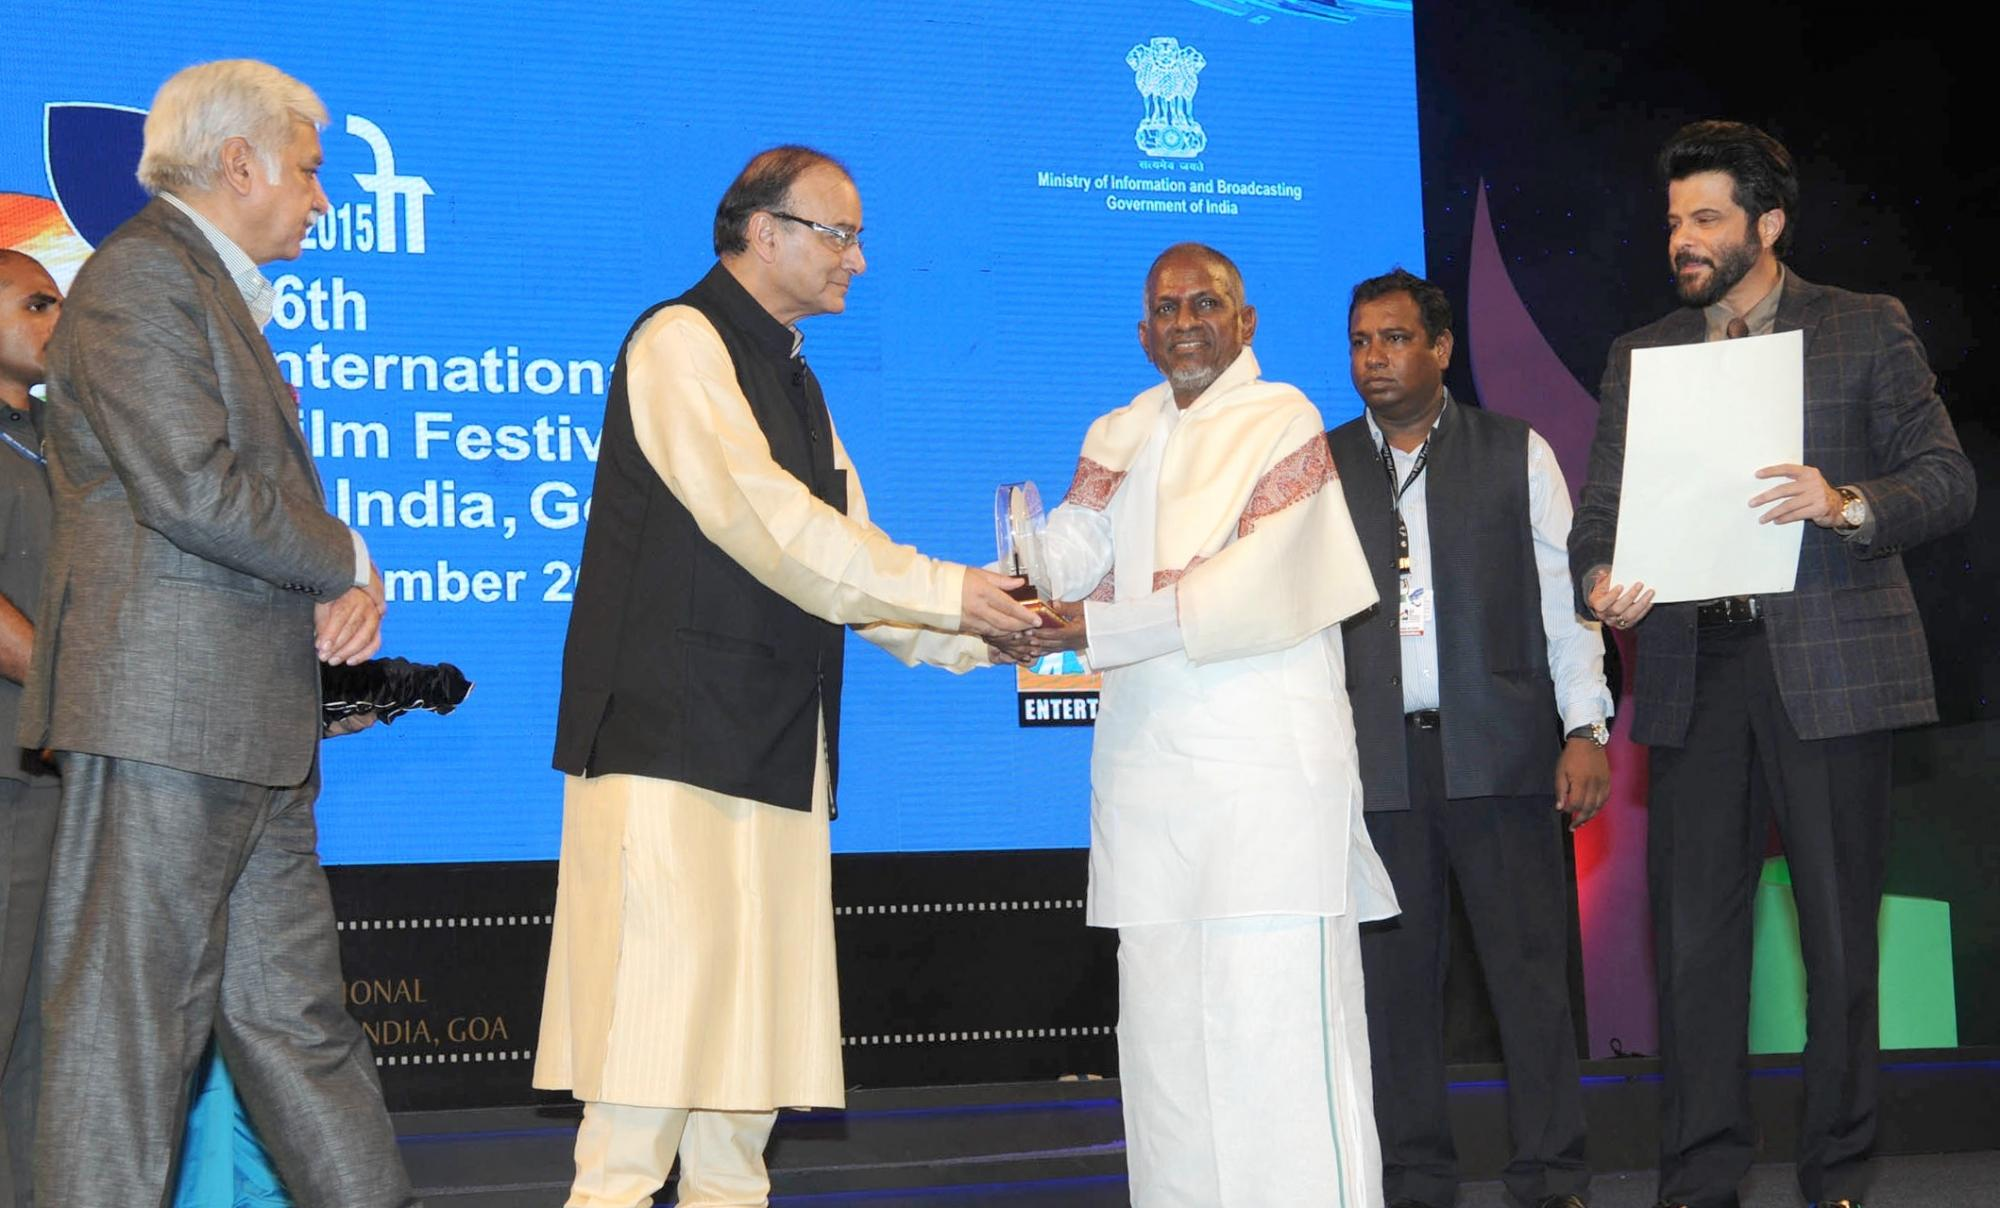 Union Minister for Finance, Corporate Affairs and Information & Broadcasting, Arun Jaitley  , Music Maestro Ilayaraja, Chief Guest actor Anil Kapoor and the Secretary, Ministry of Information and Broadcasting, Sunil Arora.